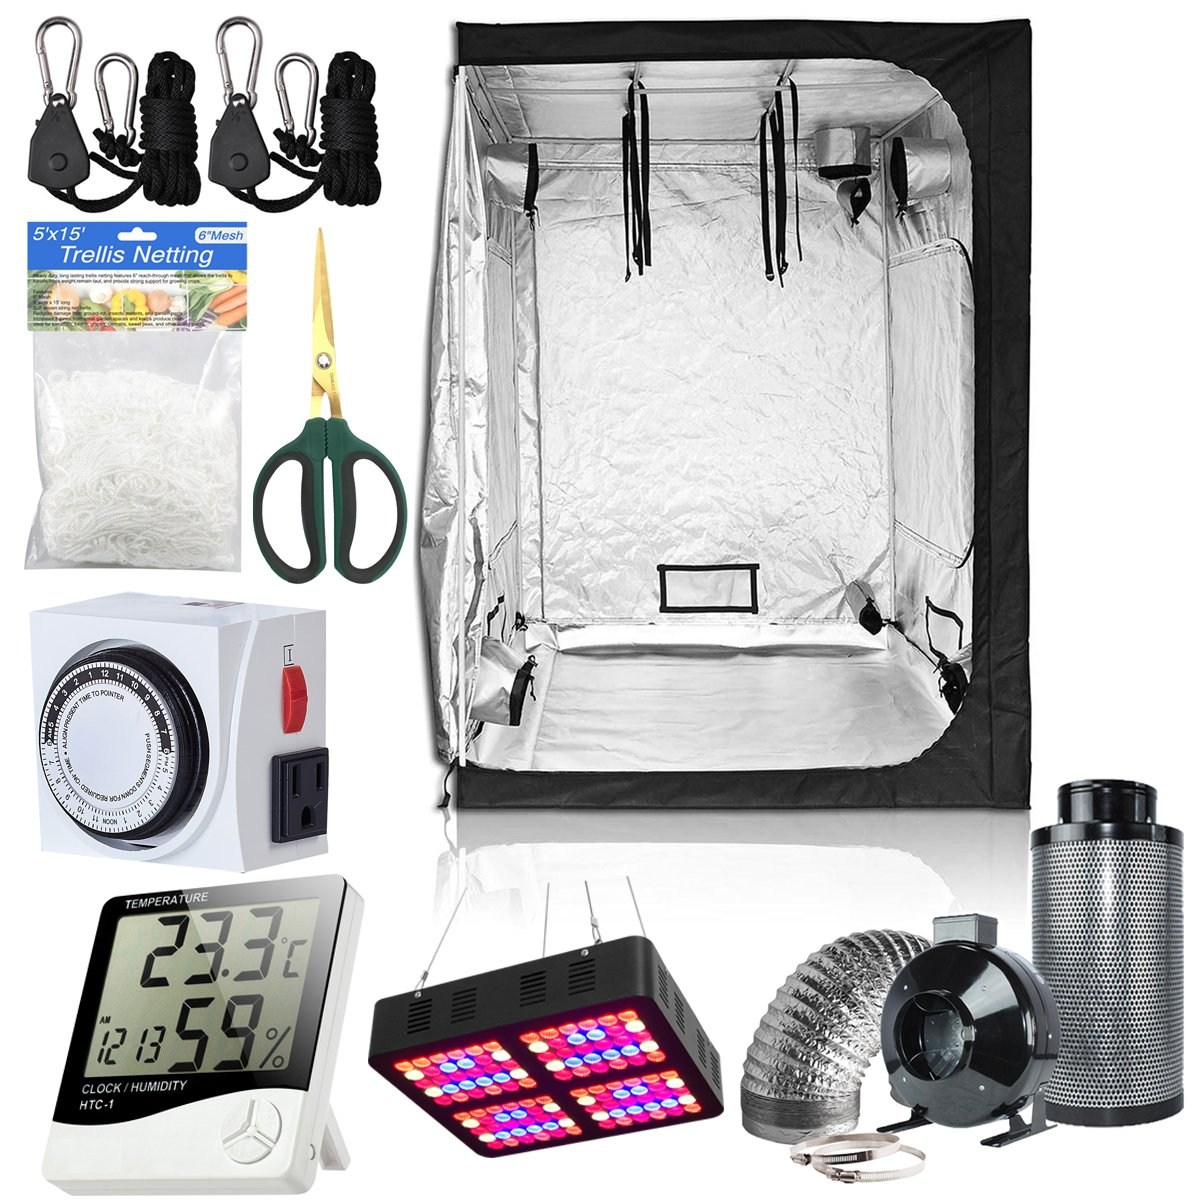 BloomGrow 60''x60''x80'' Grow Tent + 6'' Fan Filter Duct Combo + 600W LED Light + Hangers + Hygrometer + Shears + 24 Hour Timer + Trellis Netting Indoor Grow Tent Complete Kit